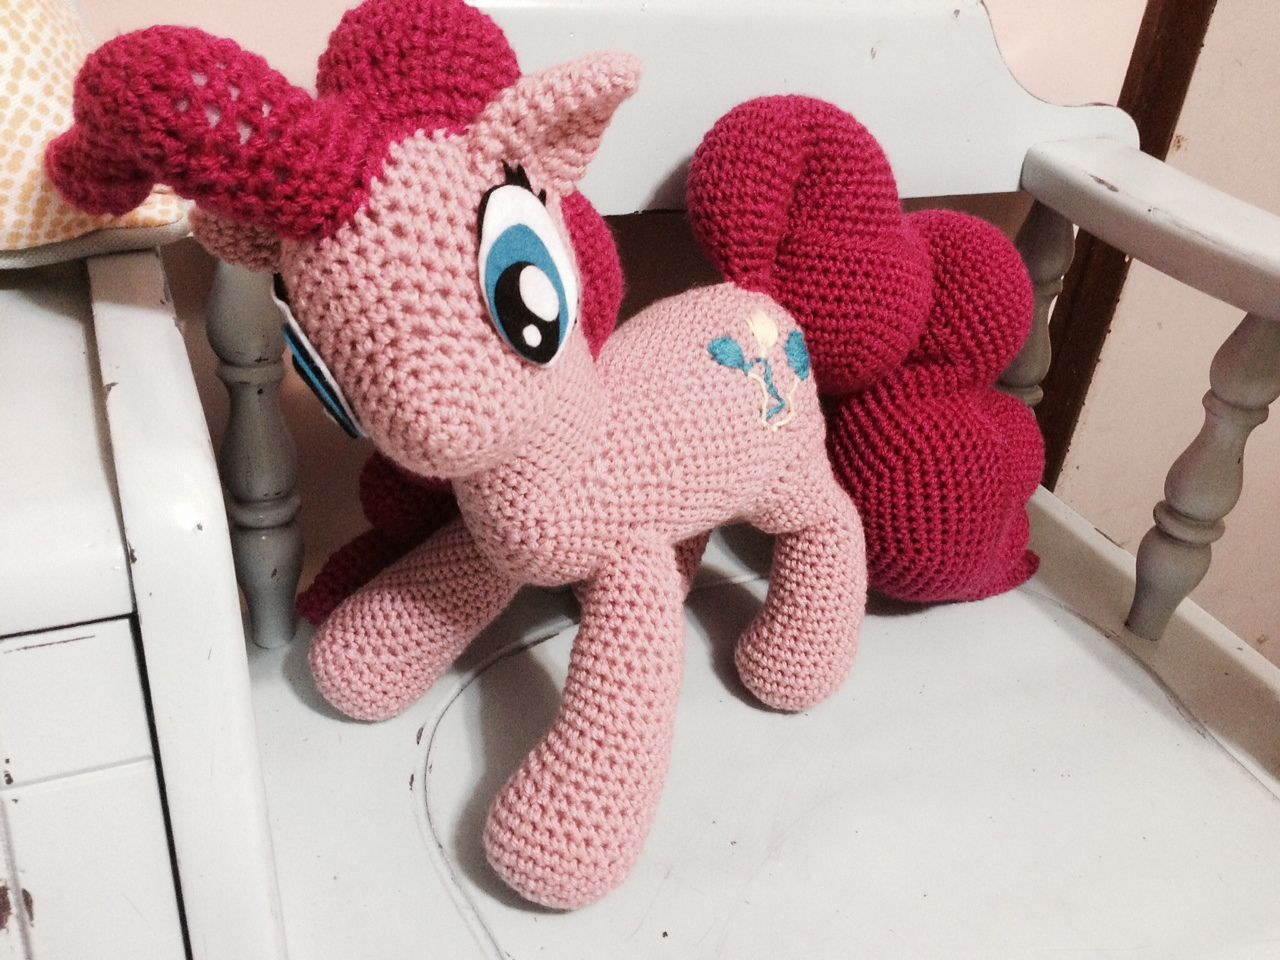 Ravelry: Pinkie Pie from My Little Pony by The Nerdy Knitter